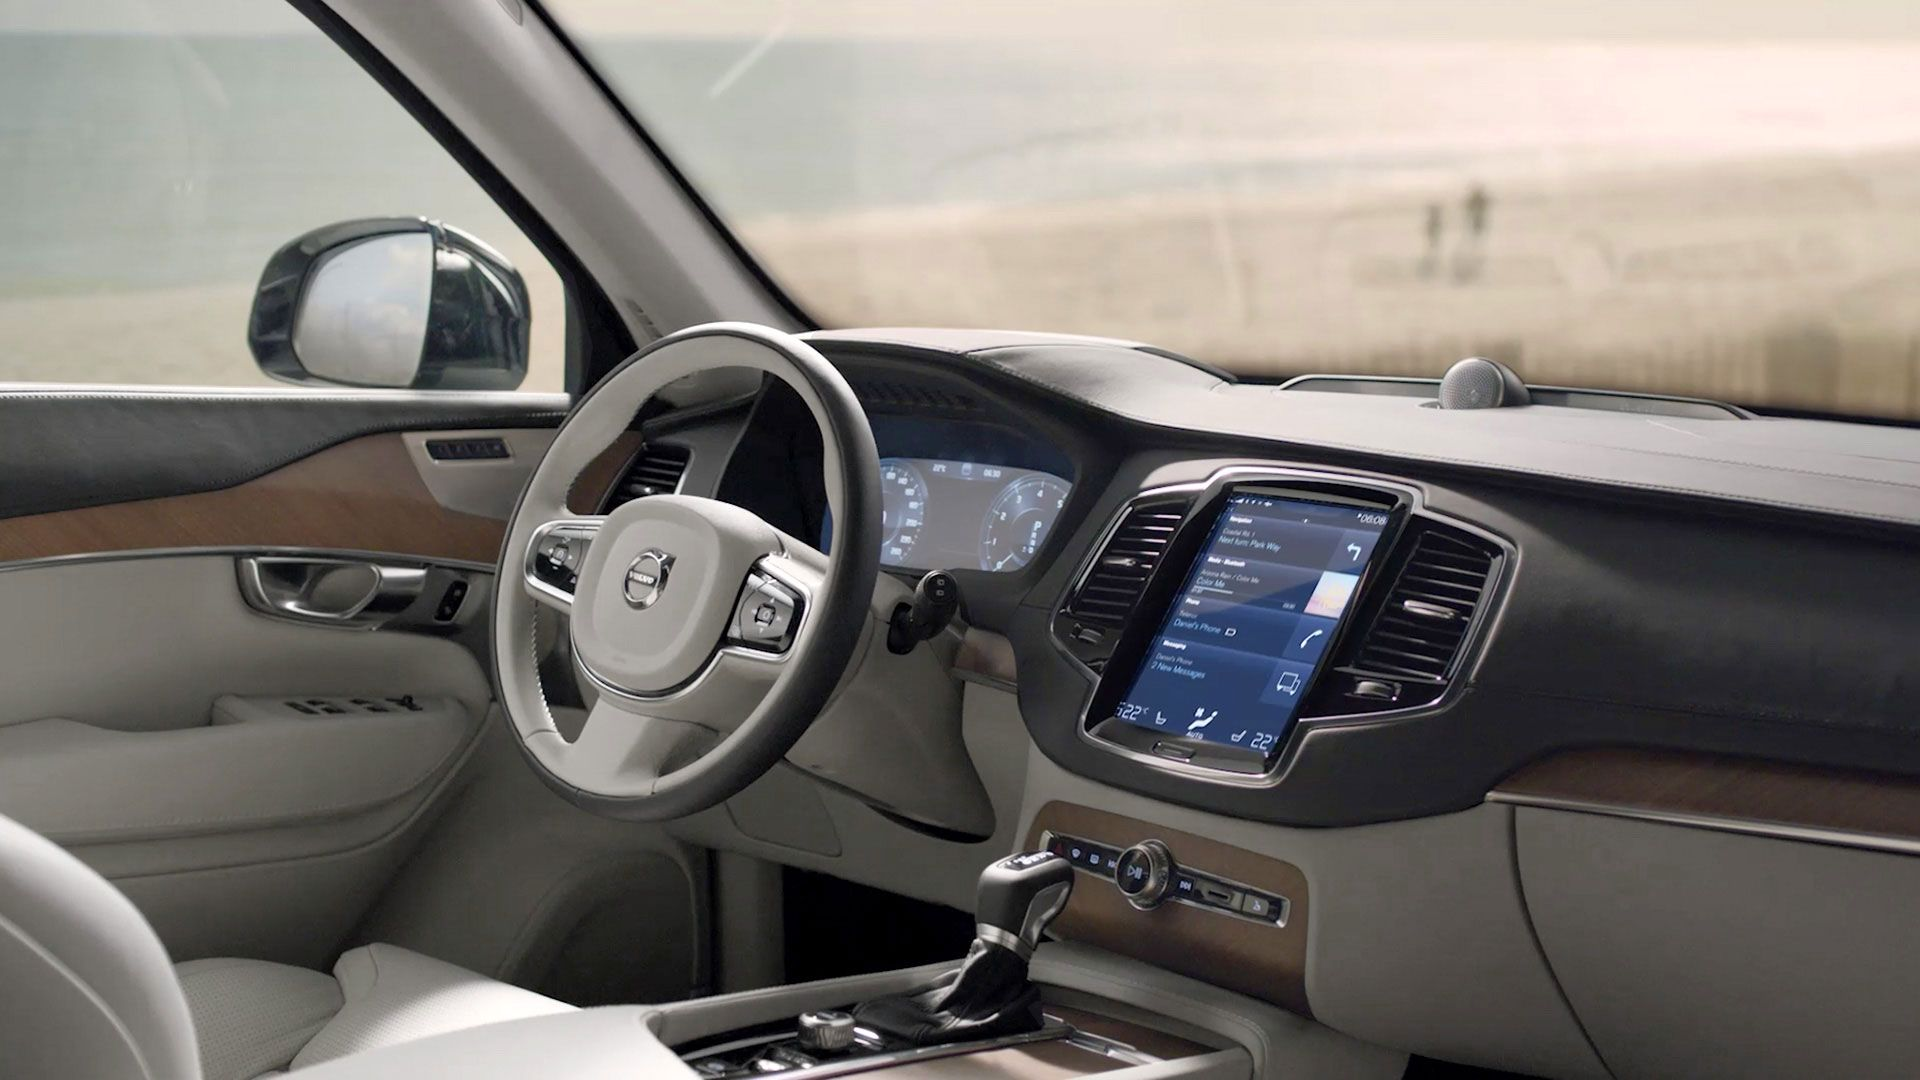 fantastic-design-of-the-white-seats-added-with-white-steering-wheels-with-black-accent-as-the-volvo-v90-2016-interior-ideas